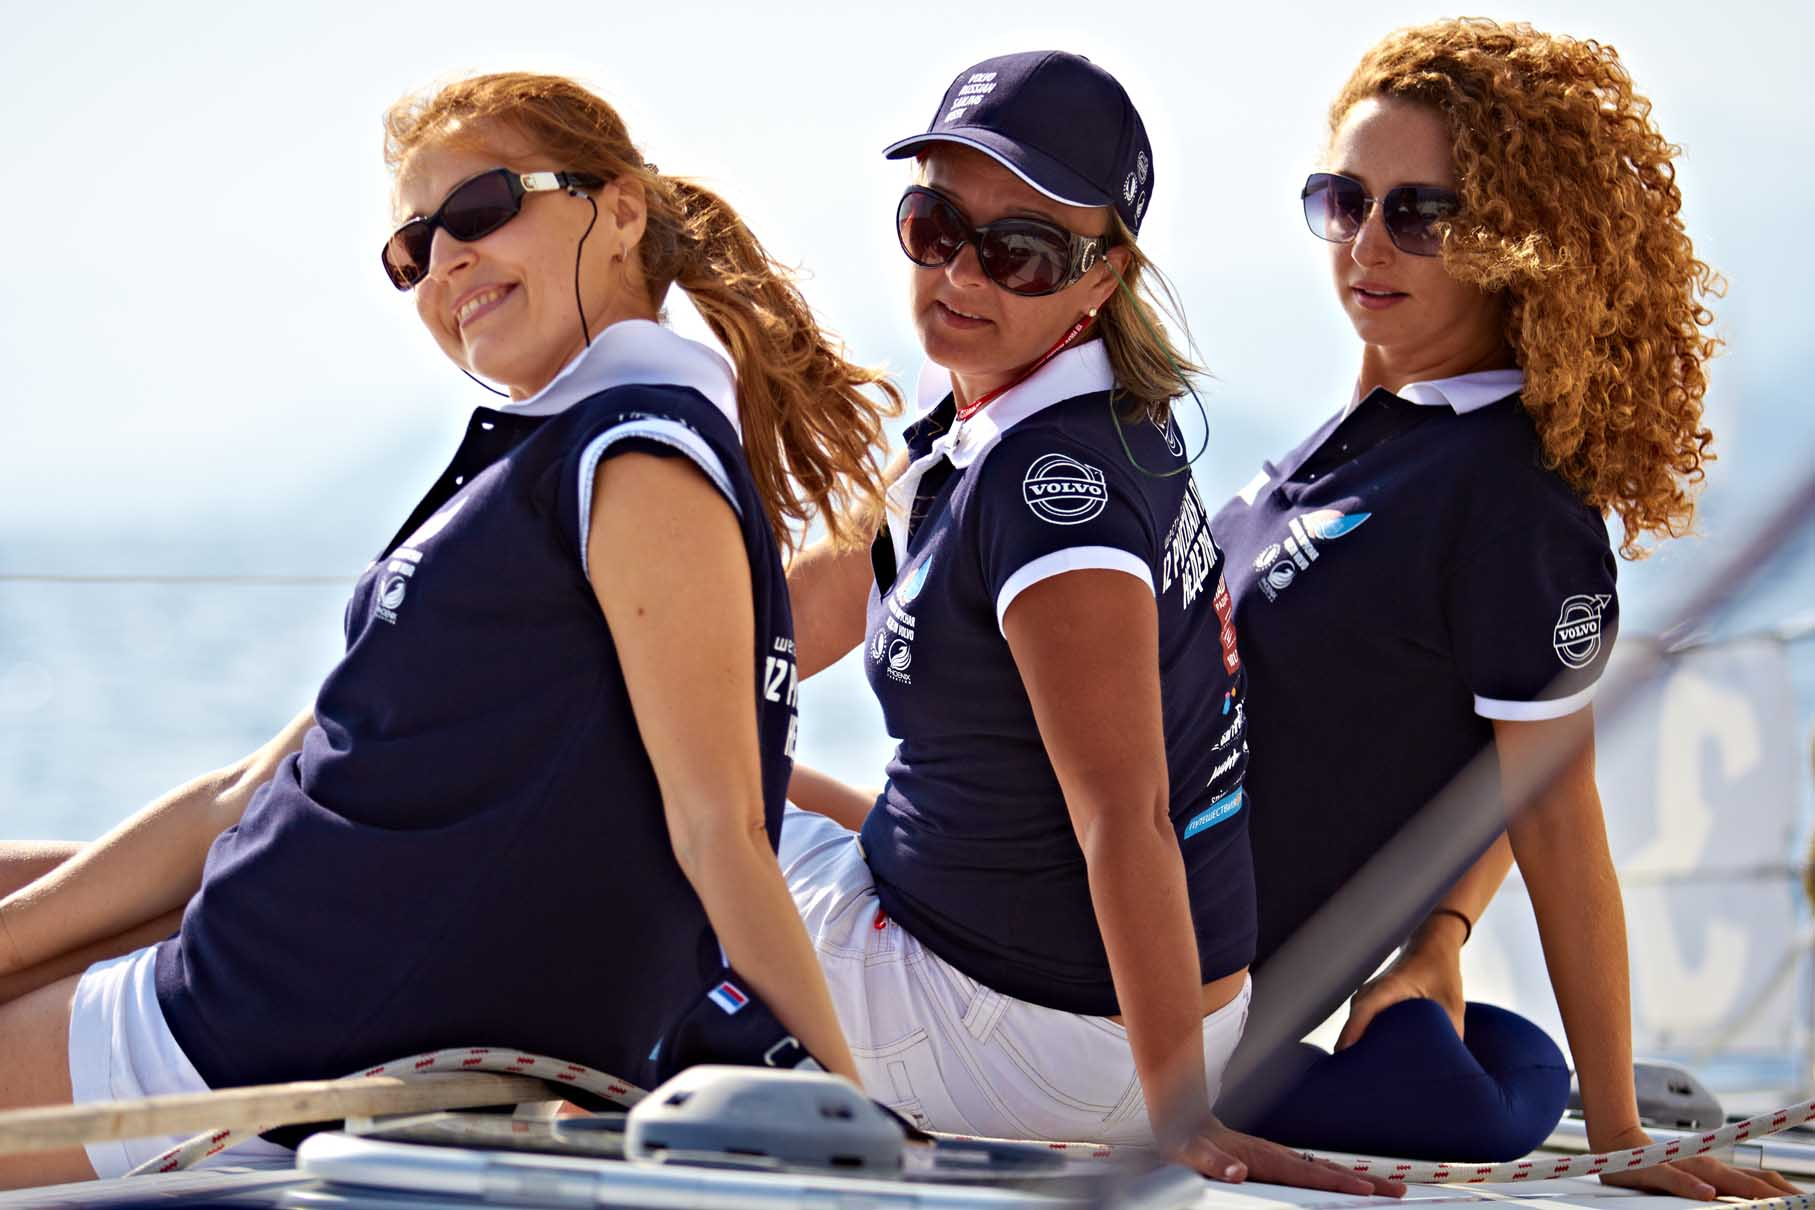 volvo_2012_race_week_IMG_0323 (2).jpg